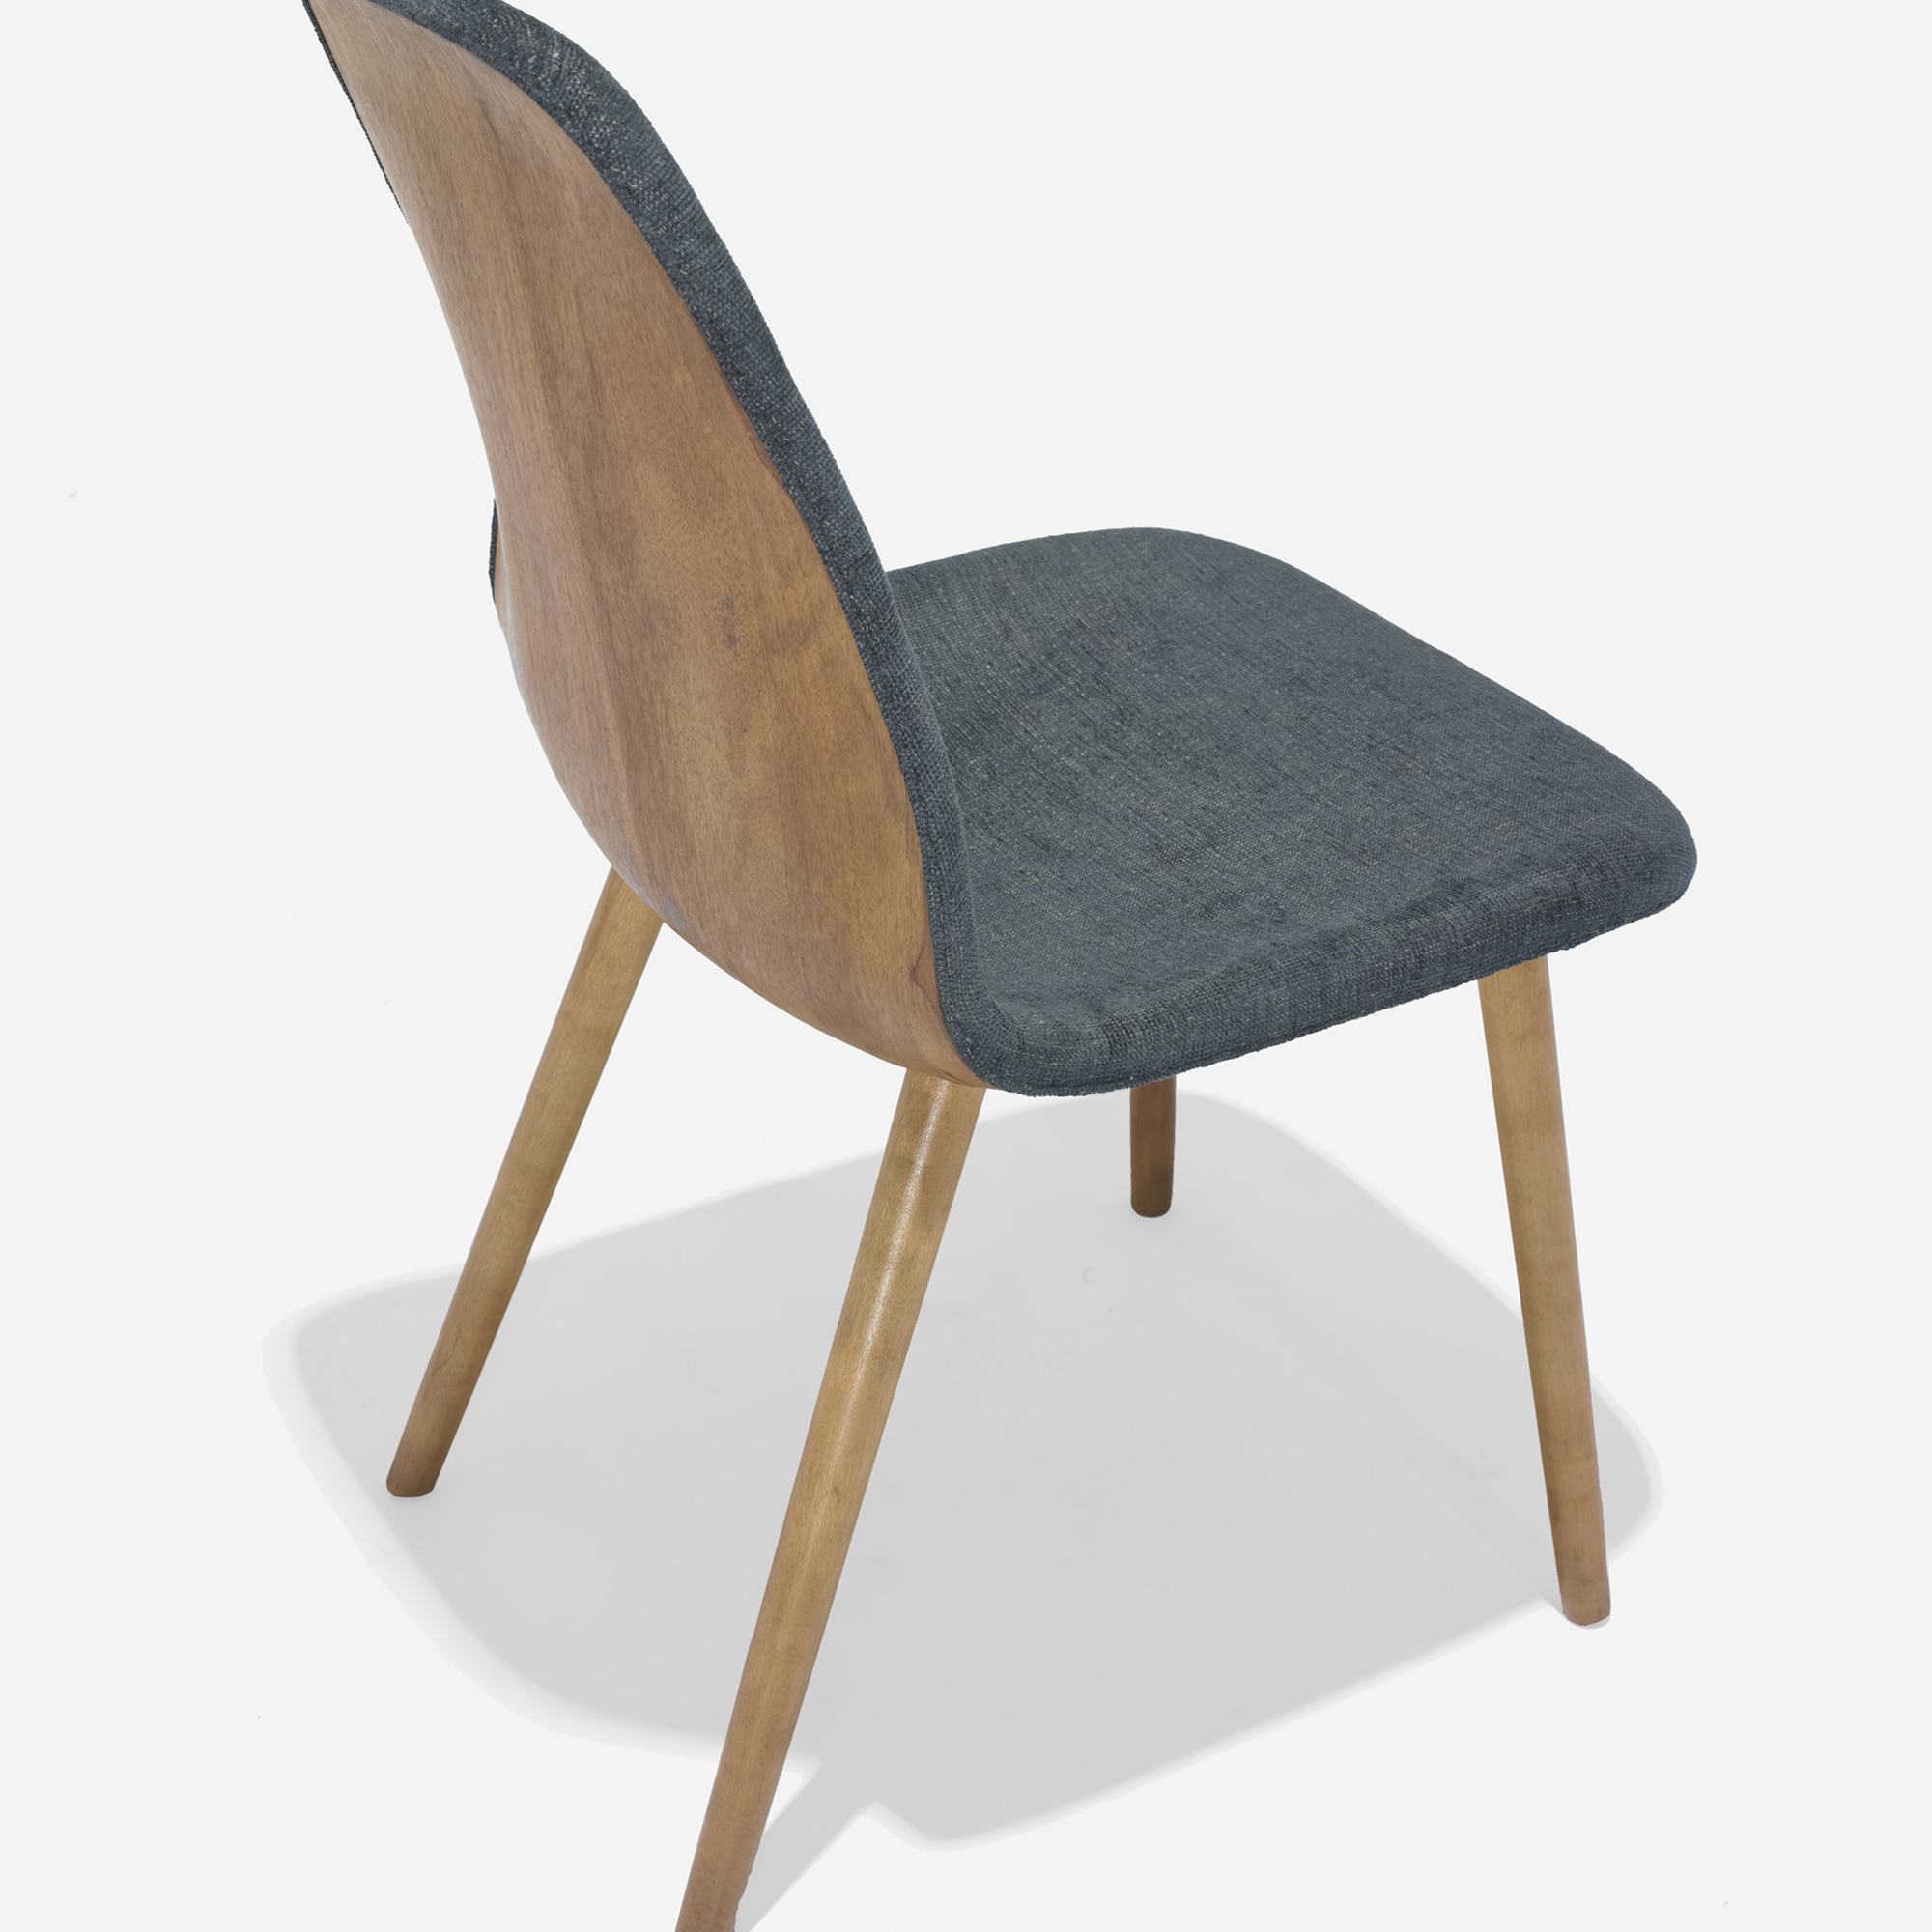 123 Charles Eames And Eero Saarinen Chair From The Museum Of Modern Art Or